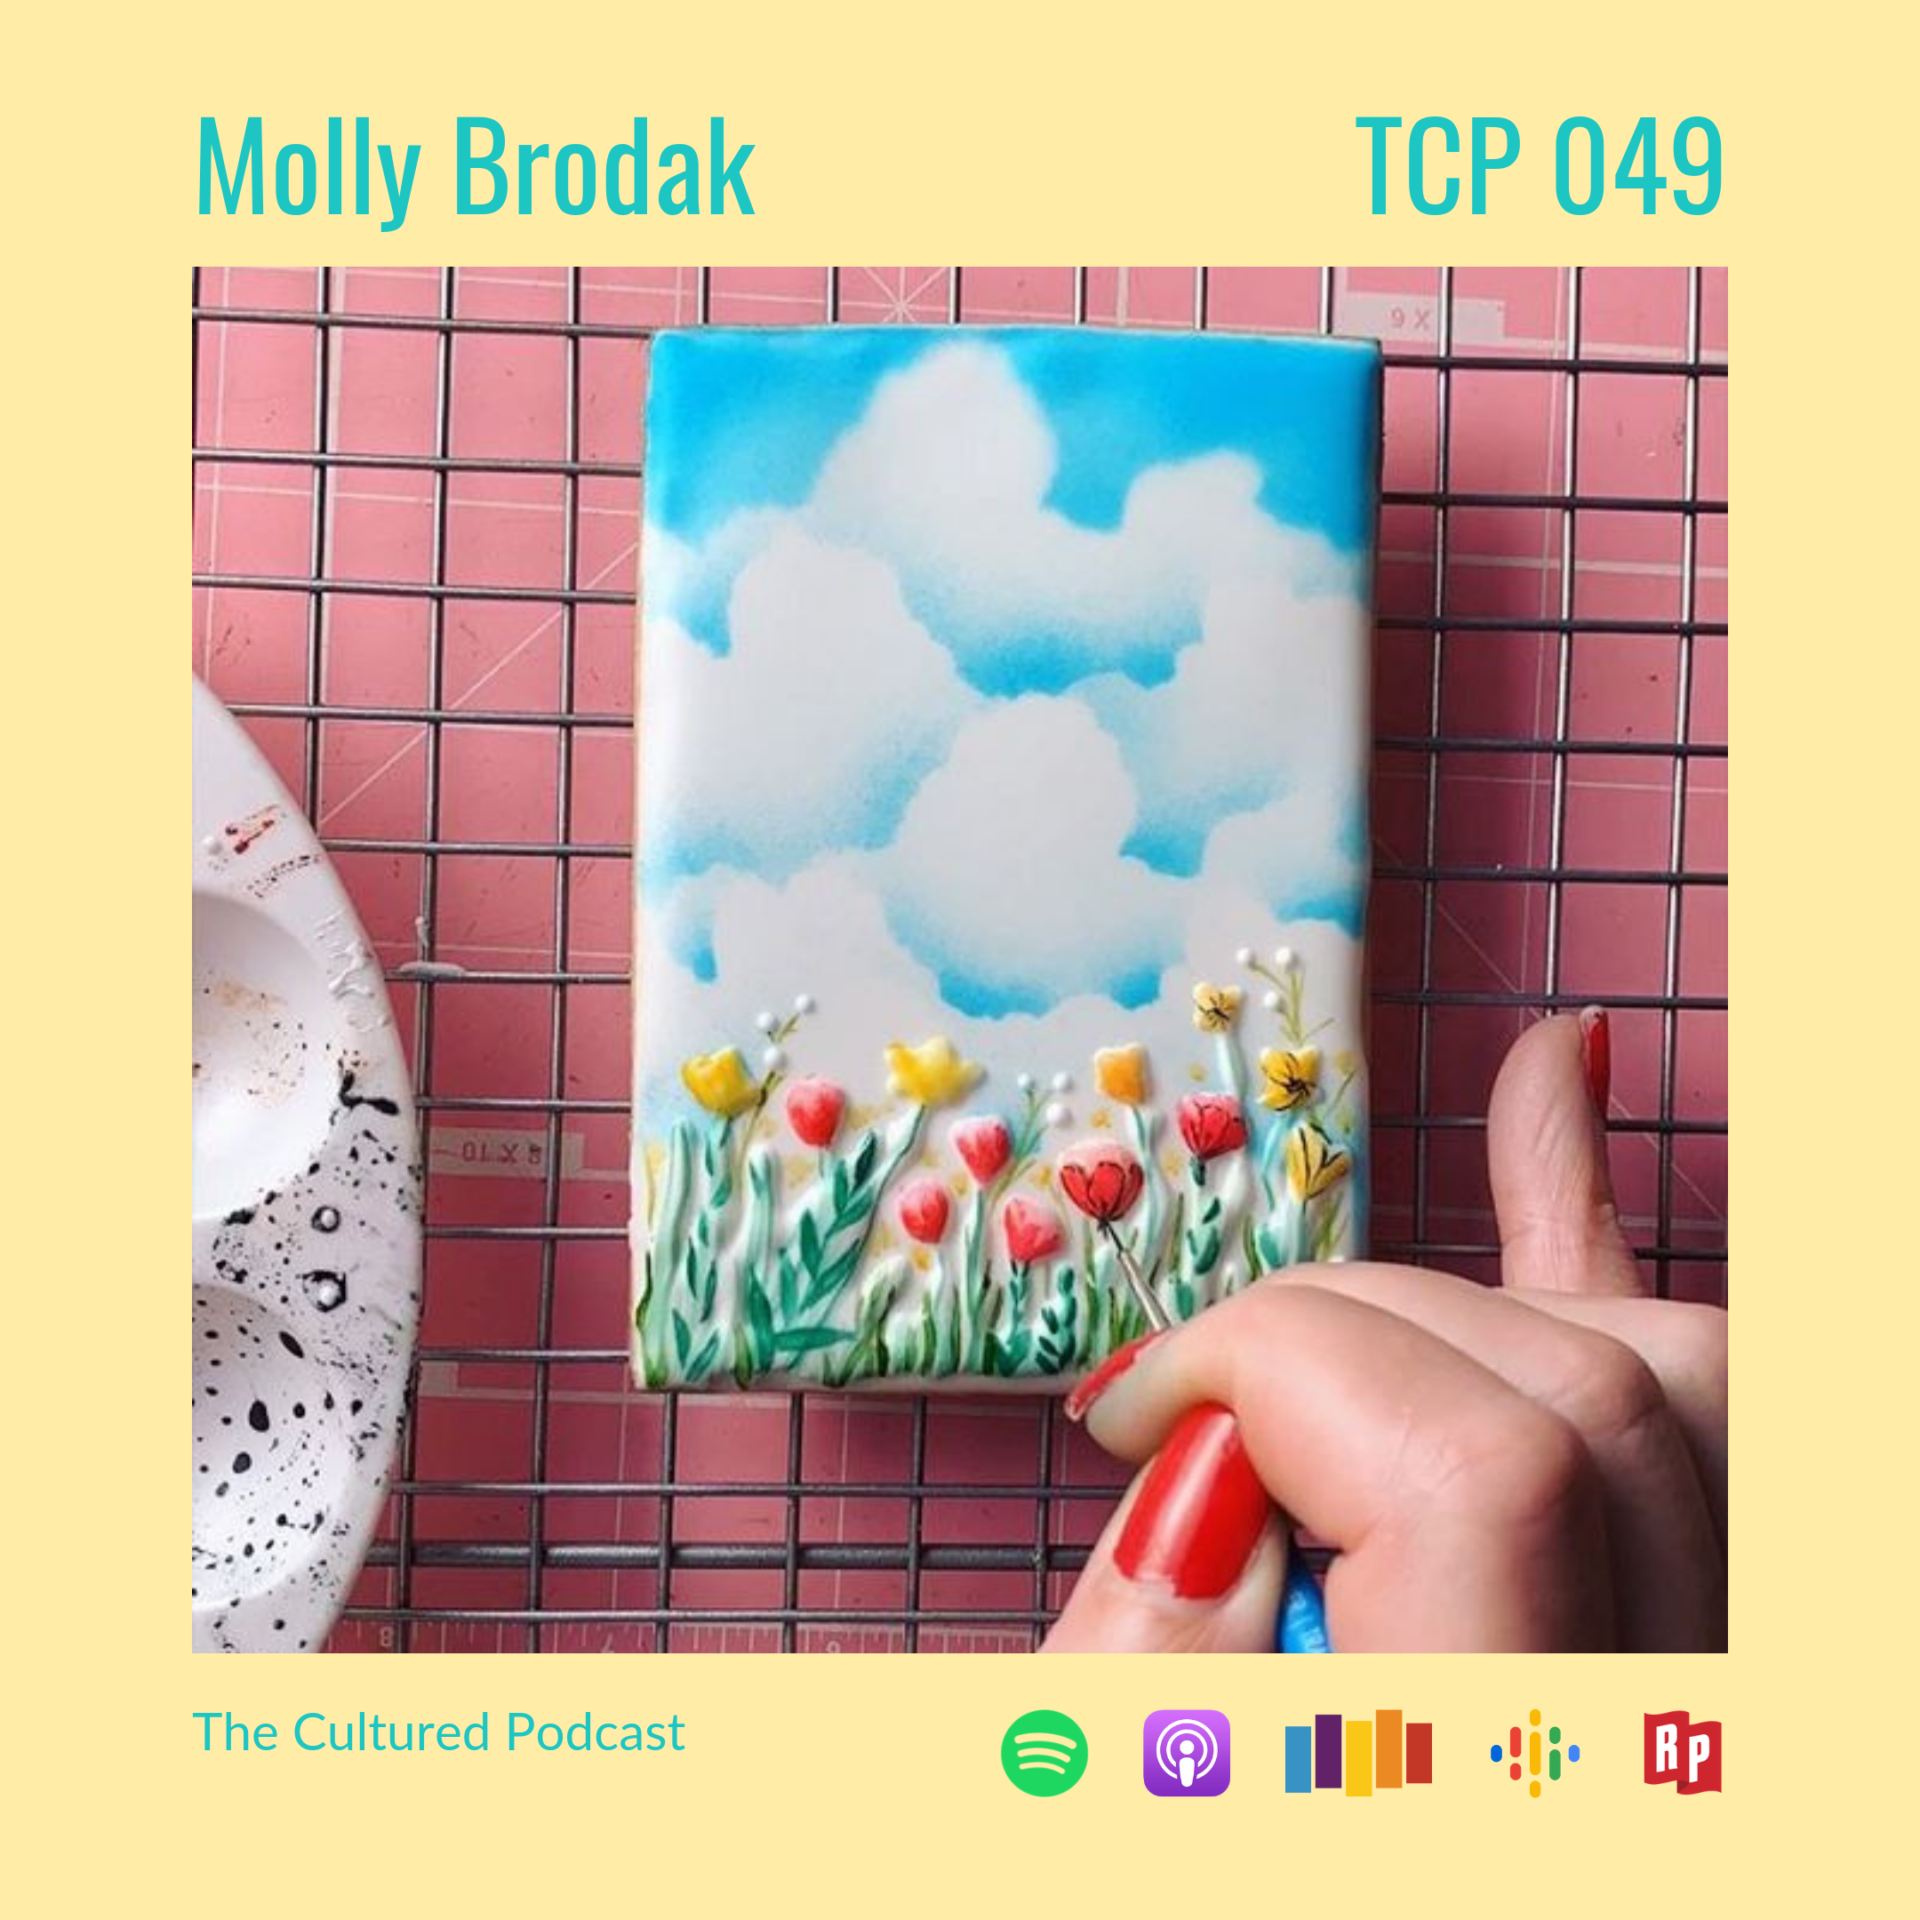 On this episode of The Cultured Podcast, Molly Brodak takes her artistic talent into the kitchen with intricately designed baked goods that appear almost too beautiful to eat...but don't dare tell her that.